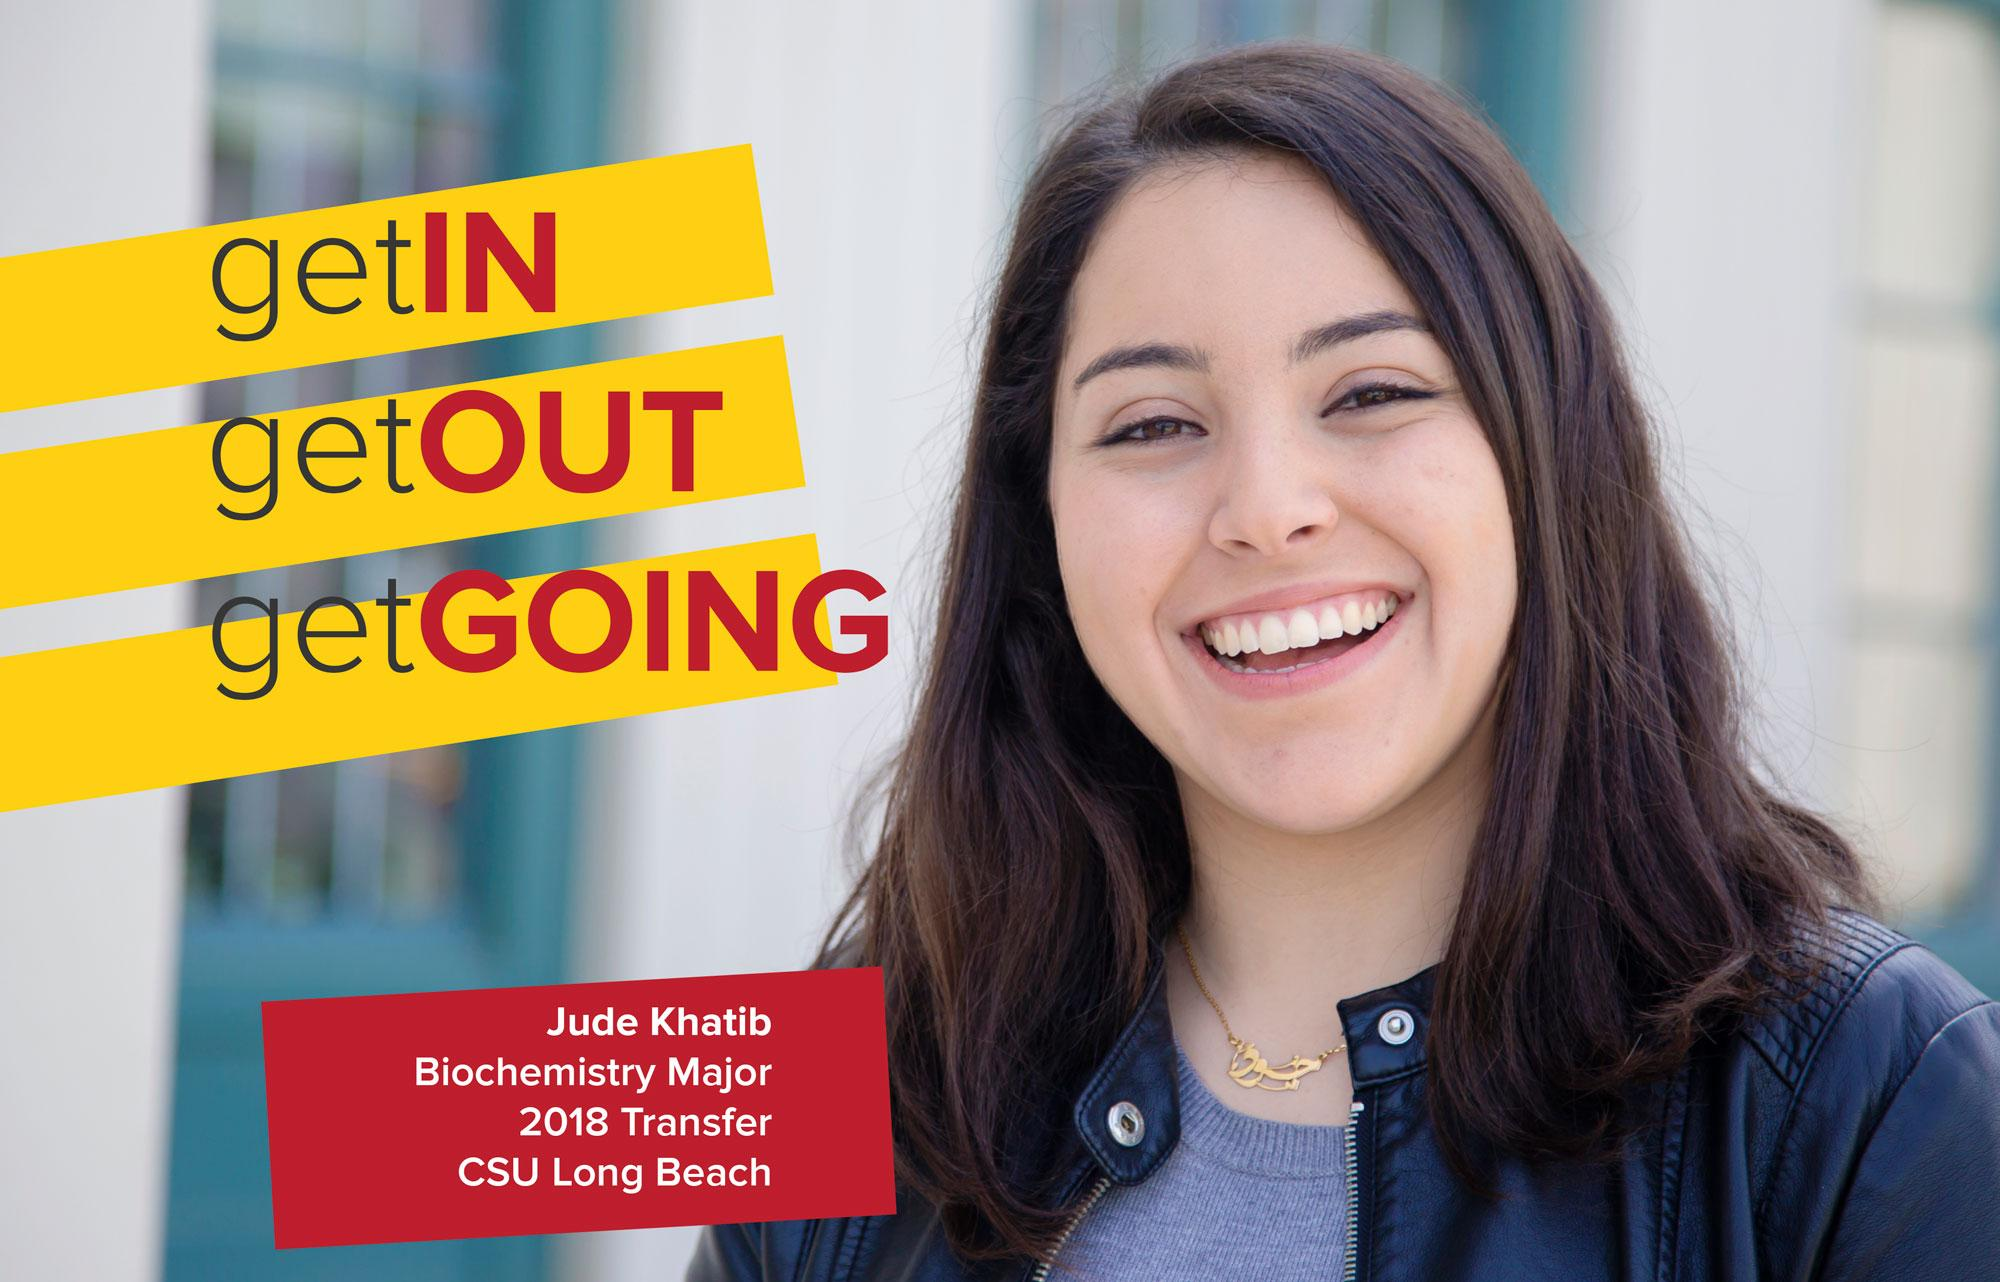 Jude Khatib is a Biochemistry major transferring to Cal State Long Beach.